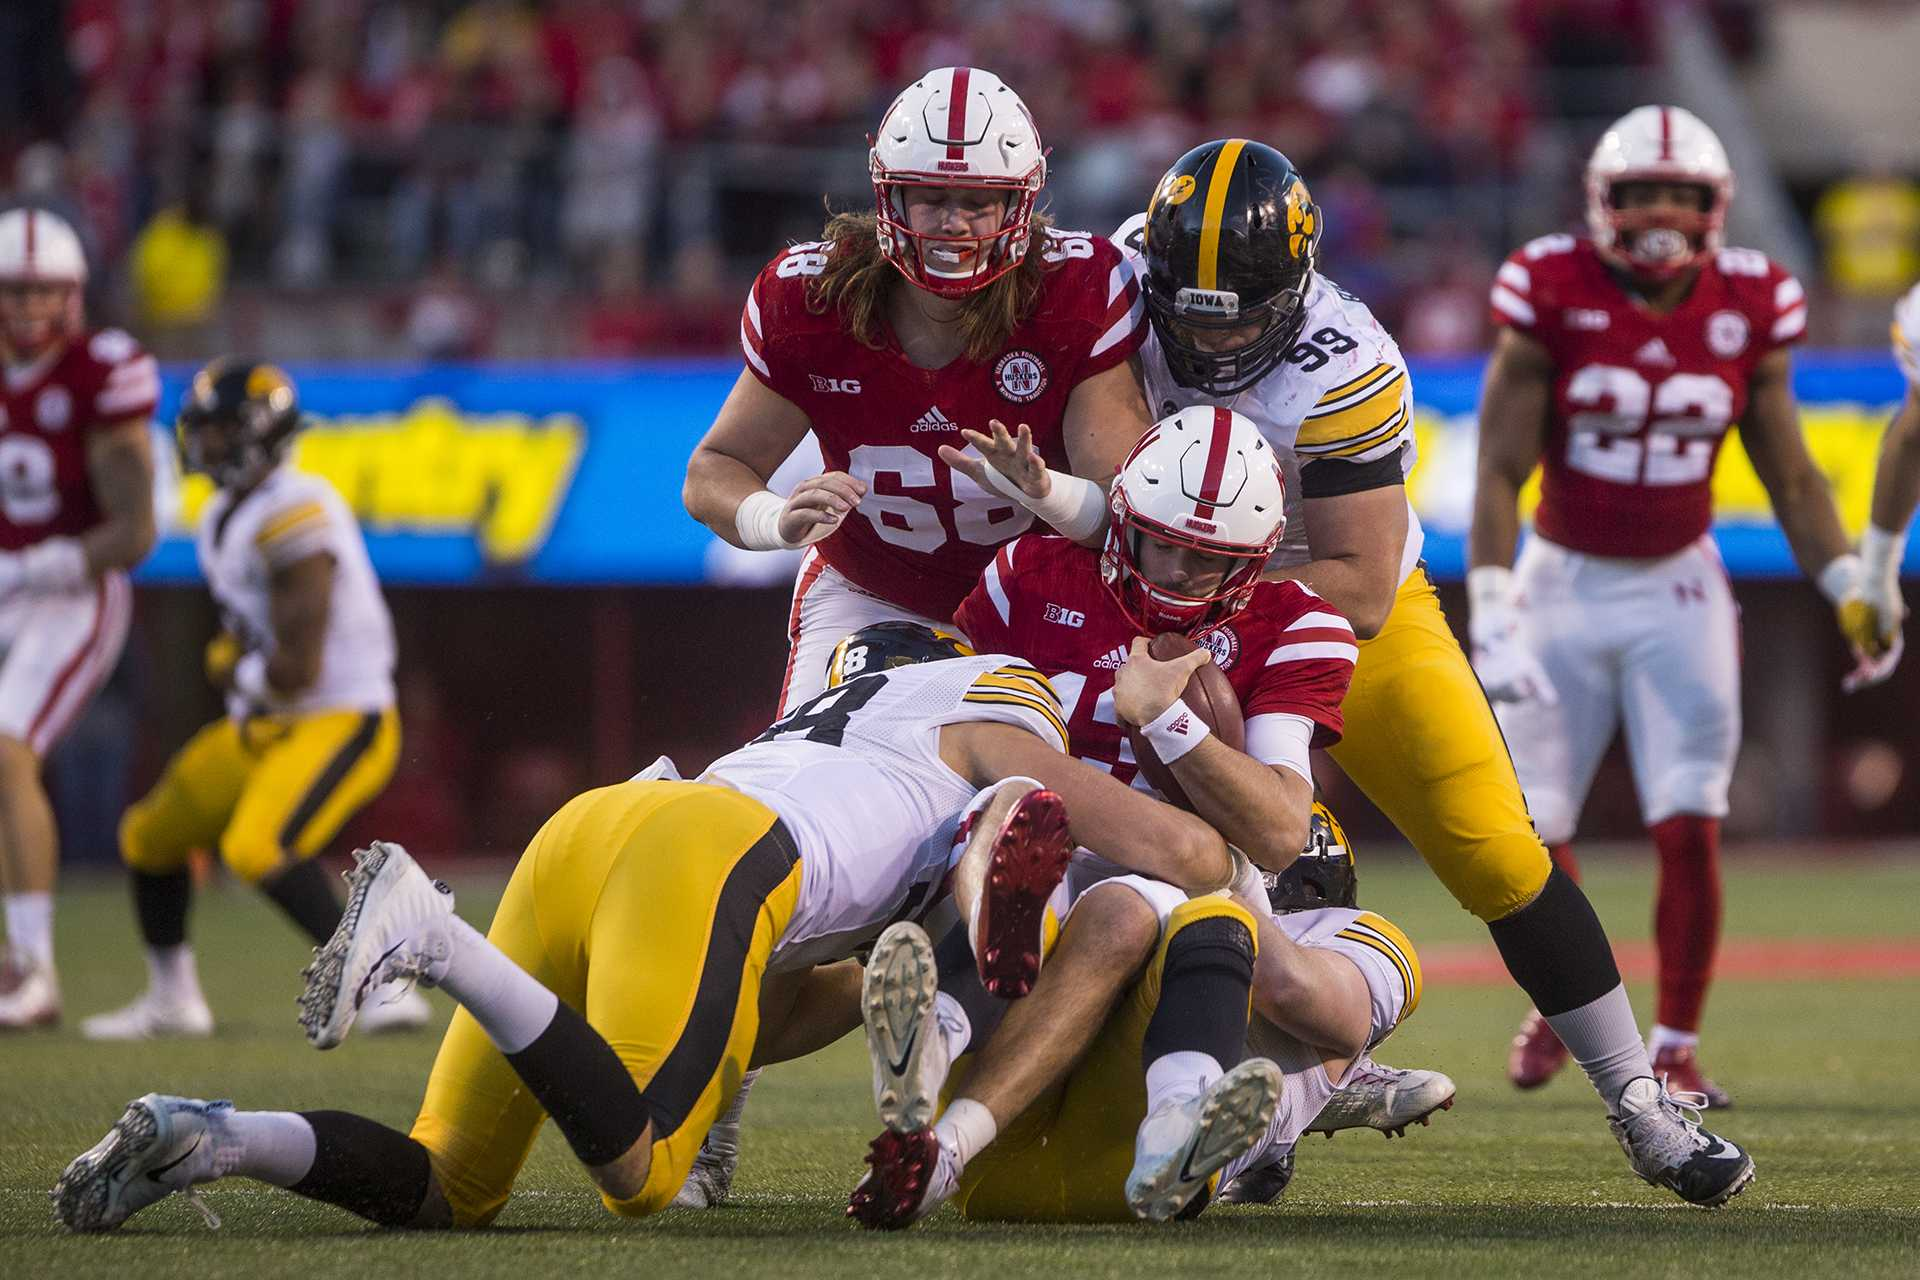 Defensive line set to play key role for Hawkeyes